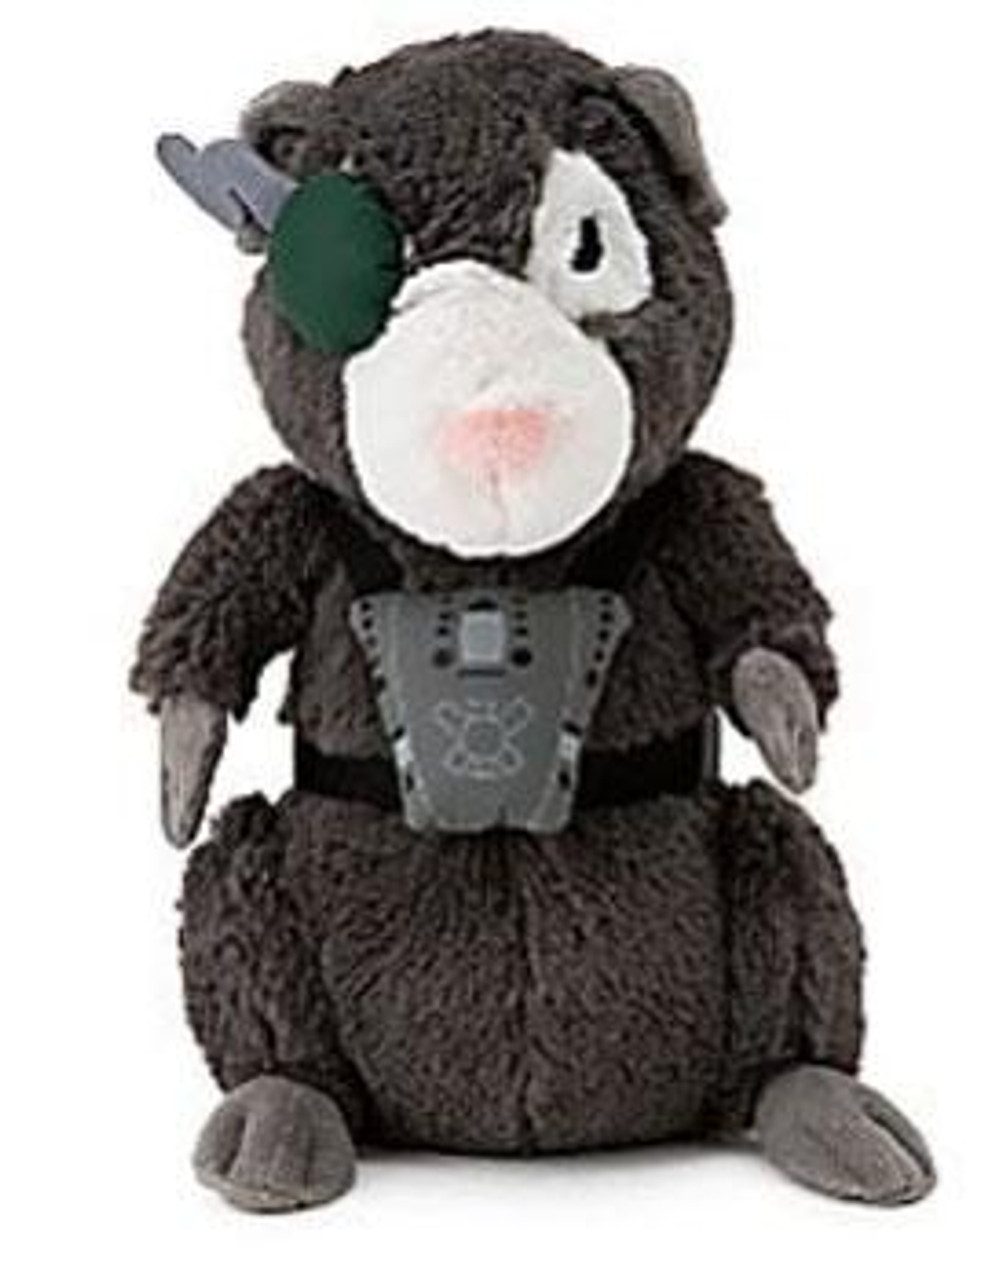 Disney G Force Blaster 10-Inch Plush Figure